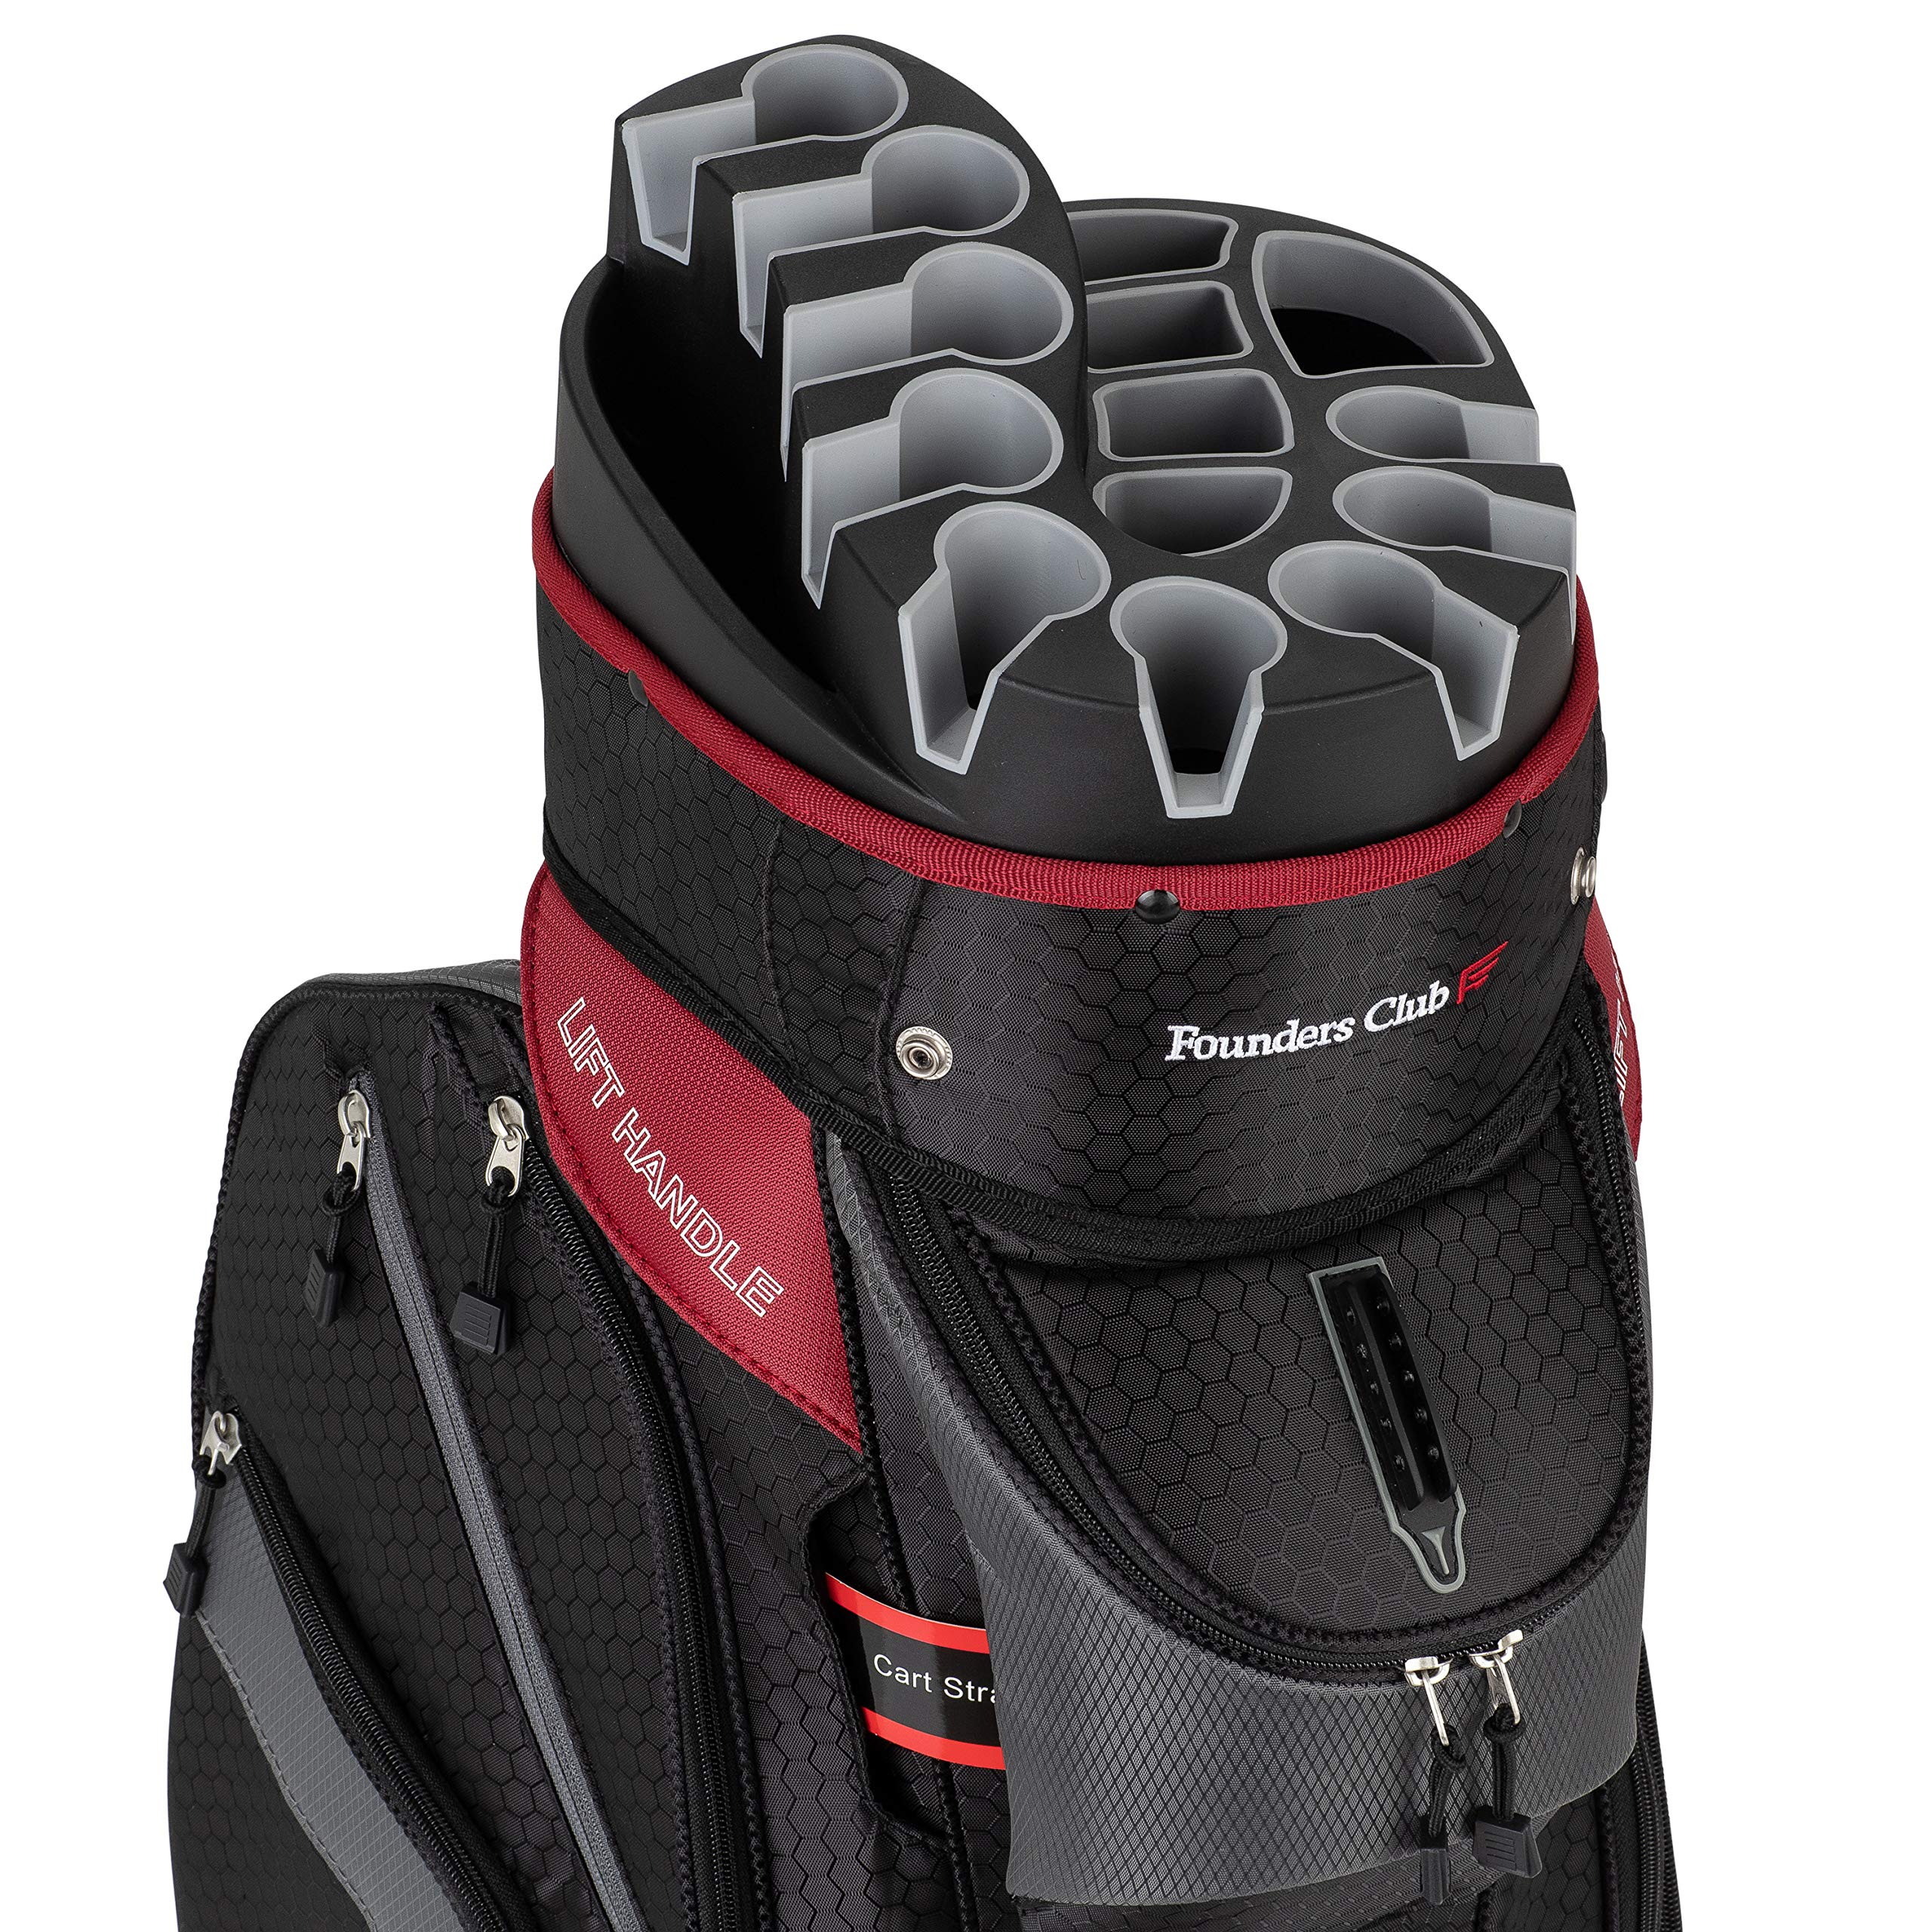 Founders Club Premium Cart Bag with 14 Way Organizer Divider Top (Charcoal and Black) by Founders Club